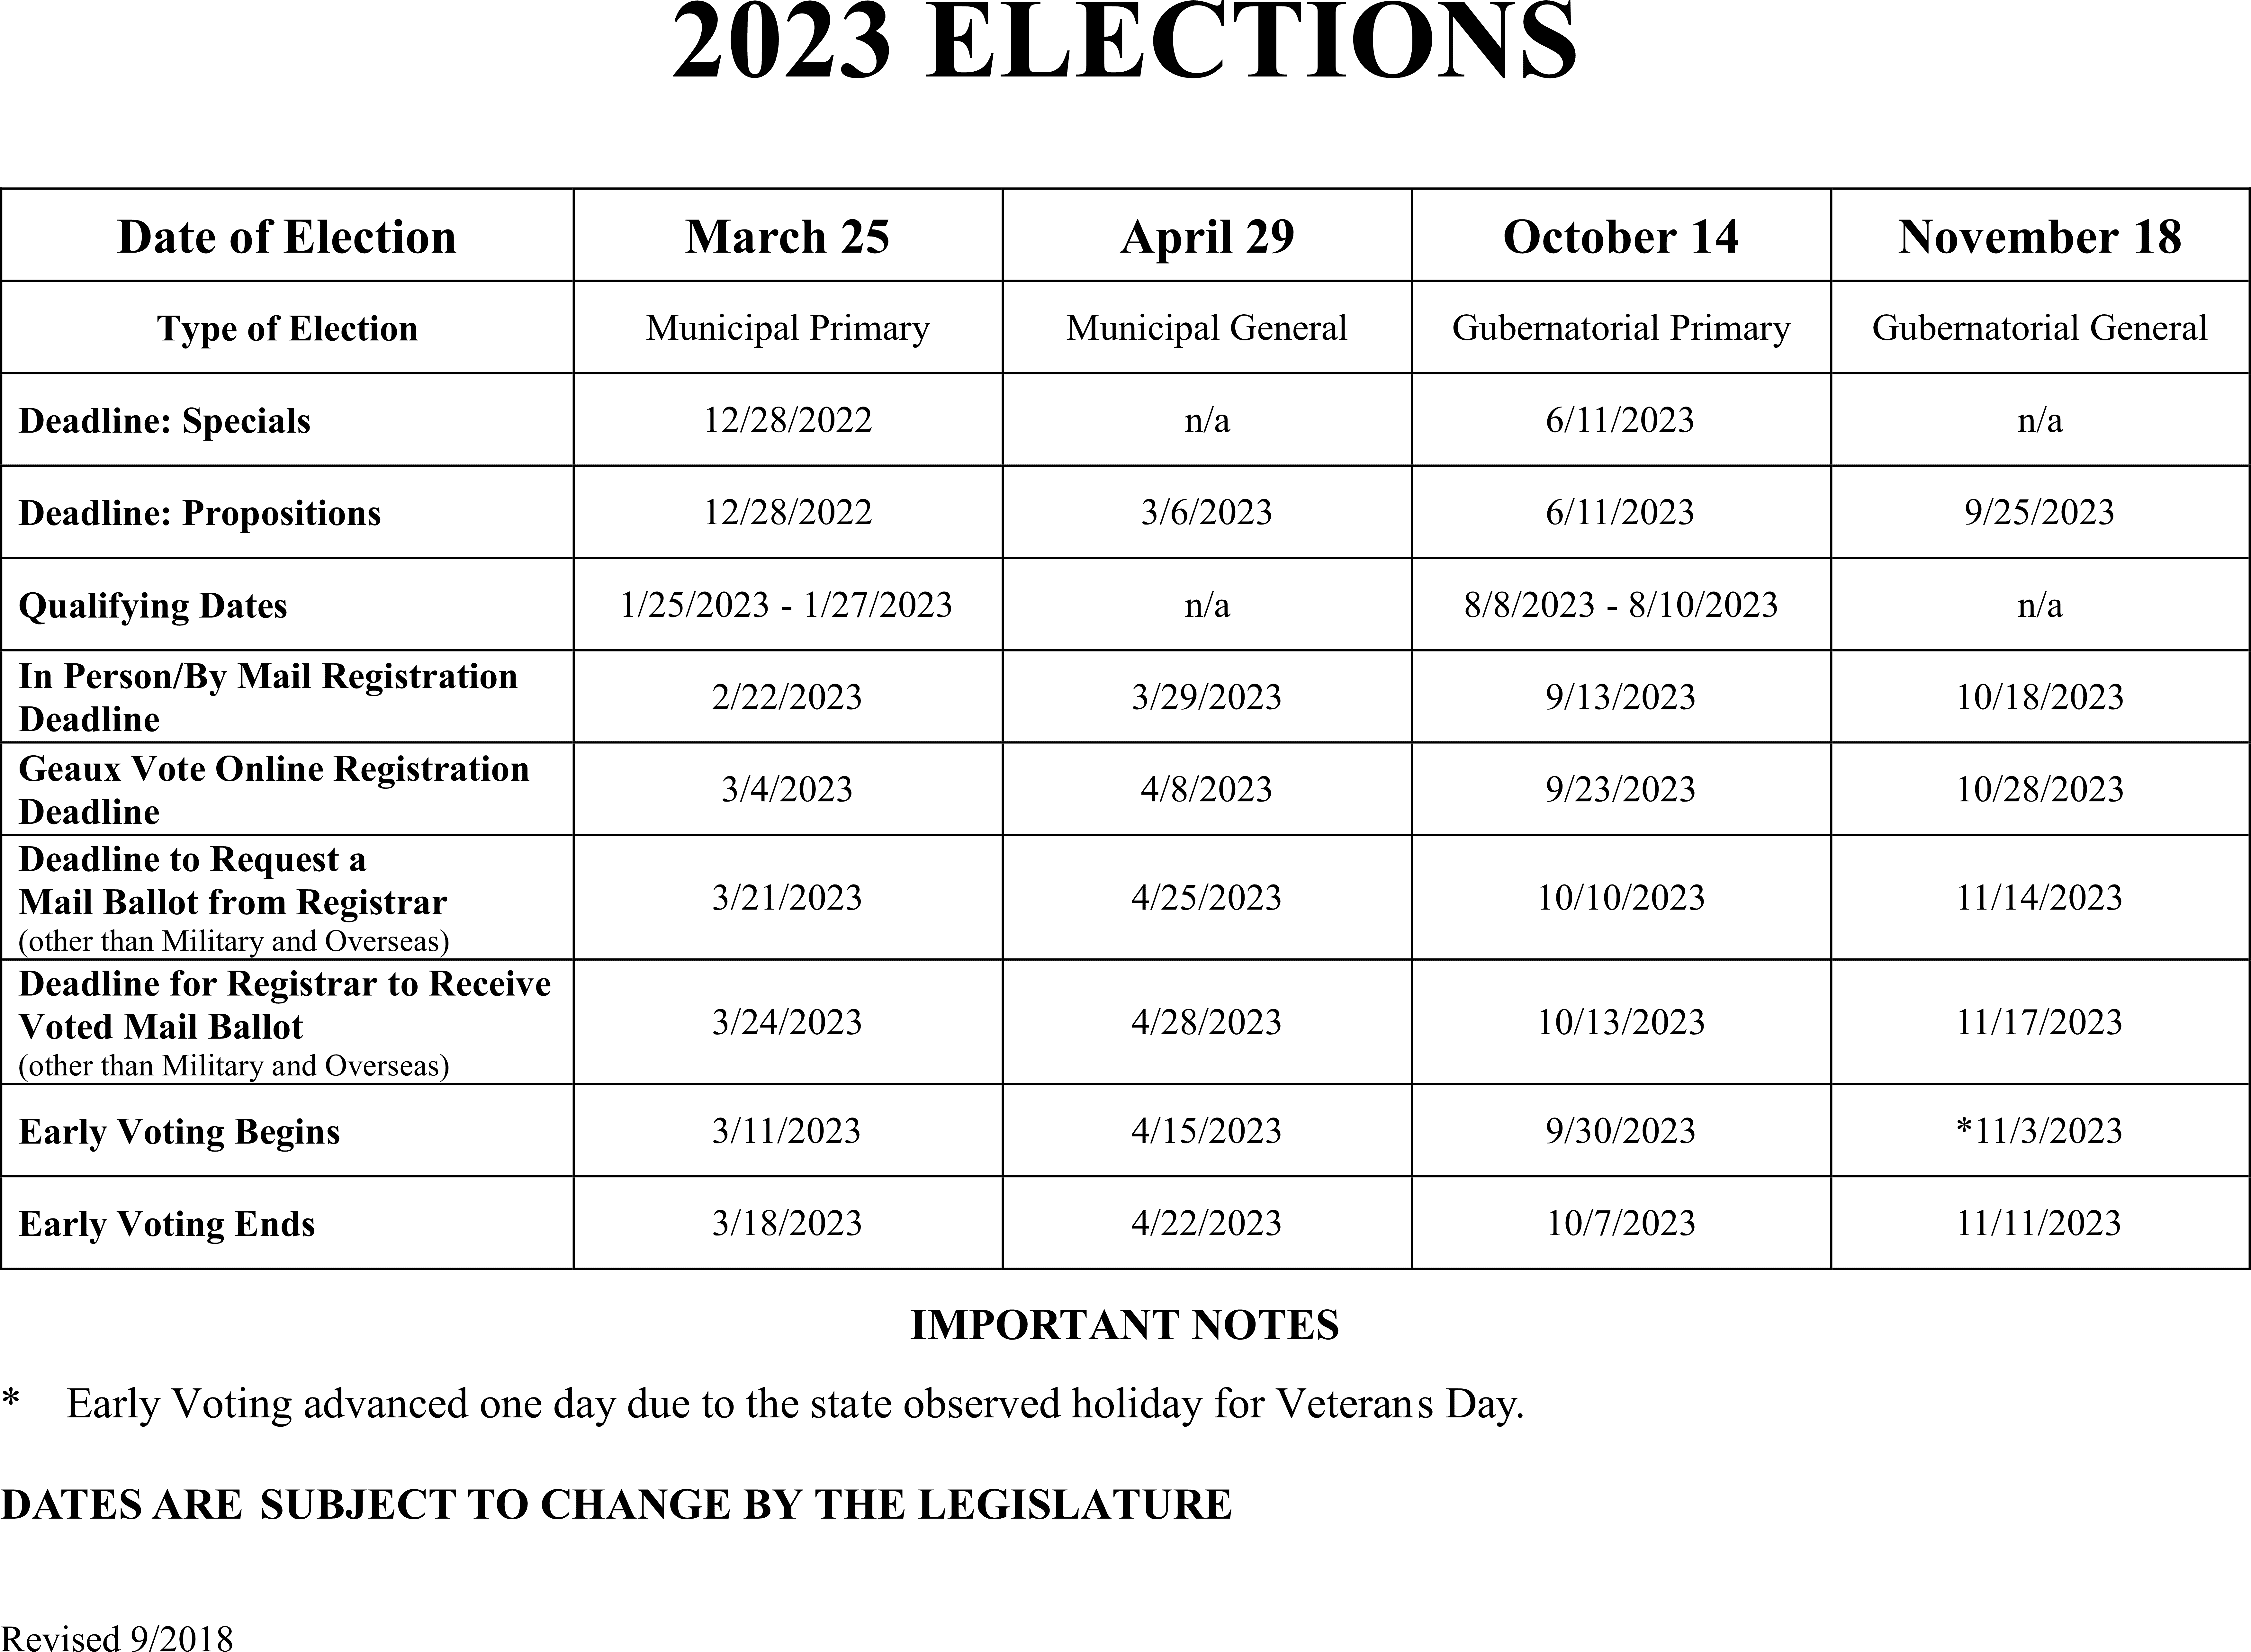 2023 Elections Dates